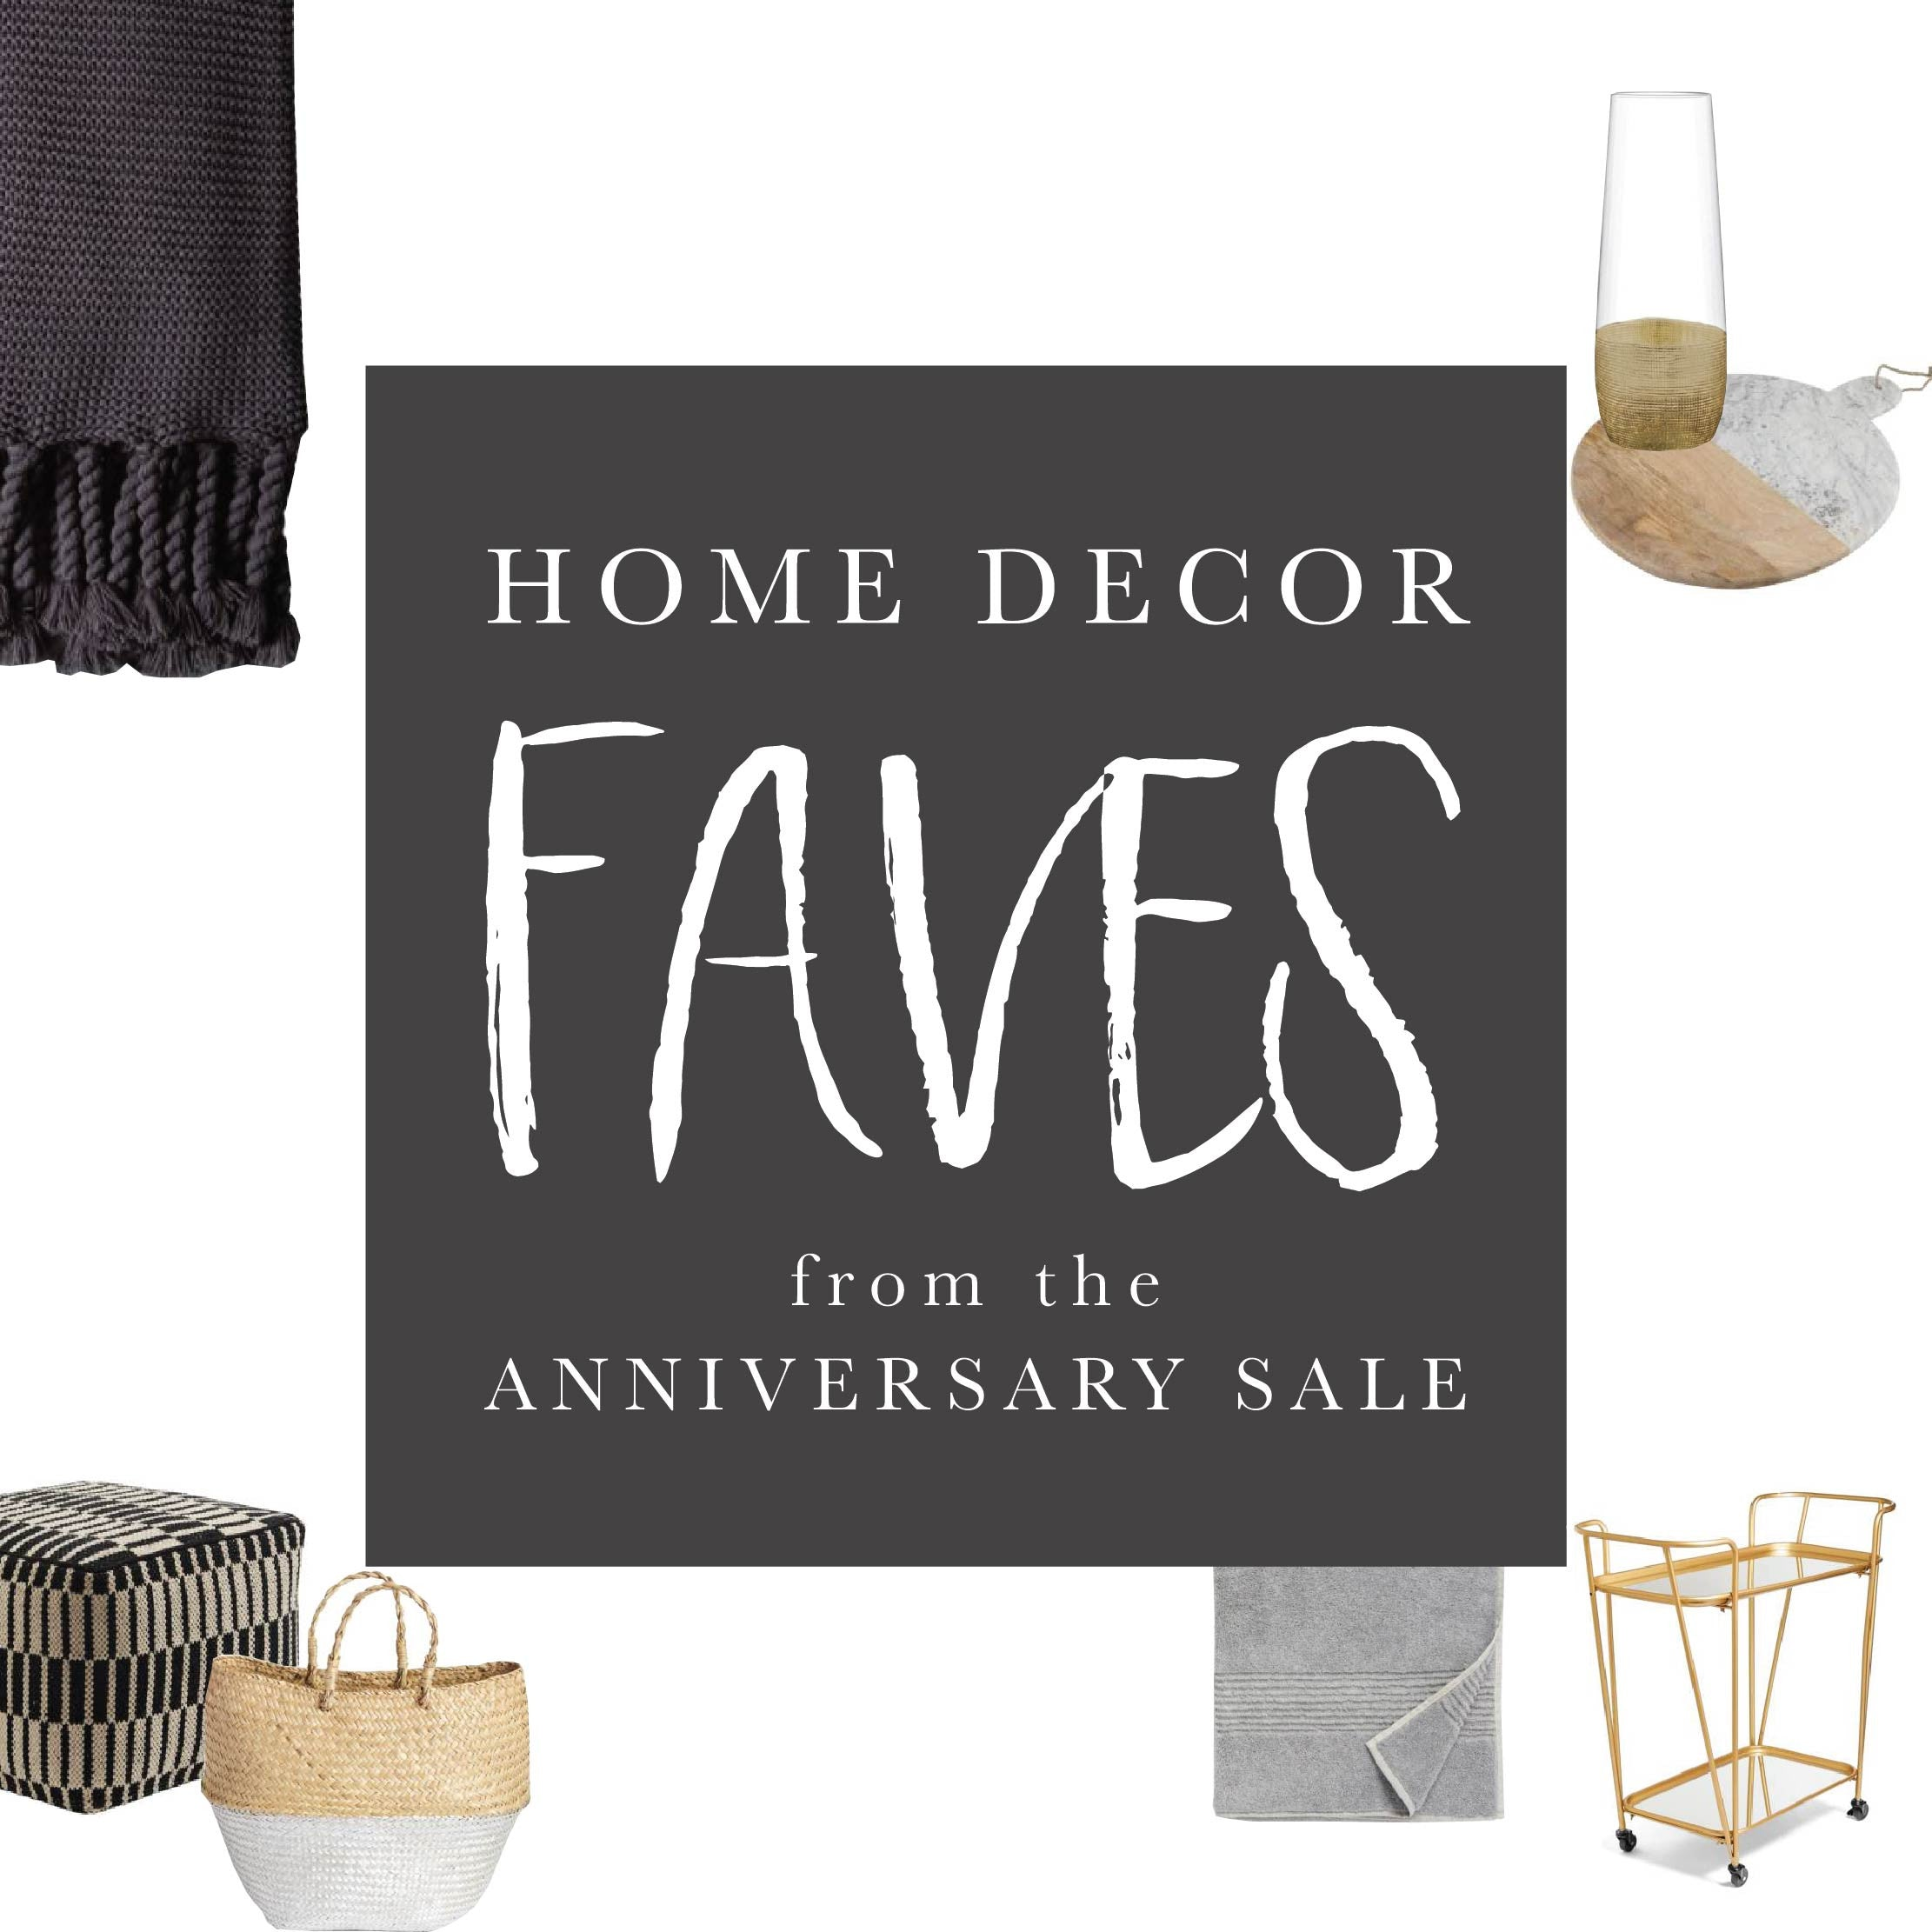 Home decor faves from the nordstrom anniversary sale for House decor sale